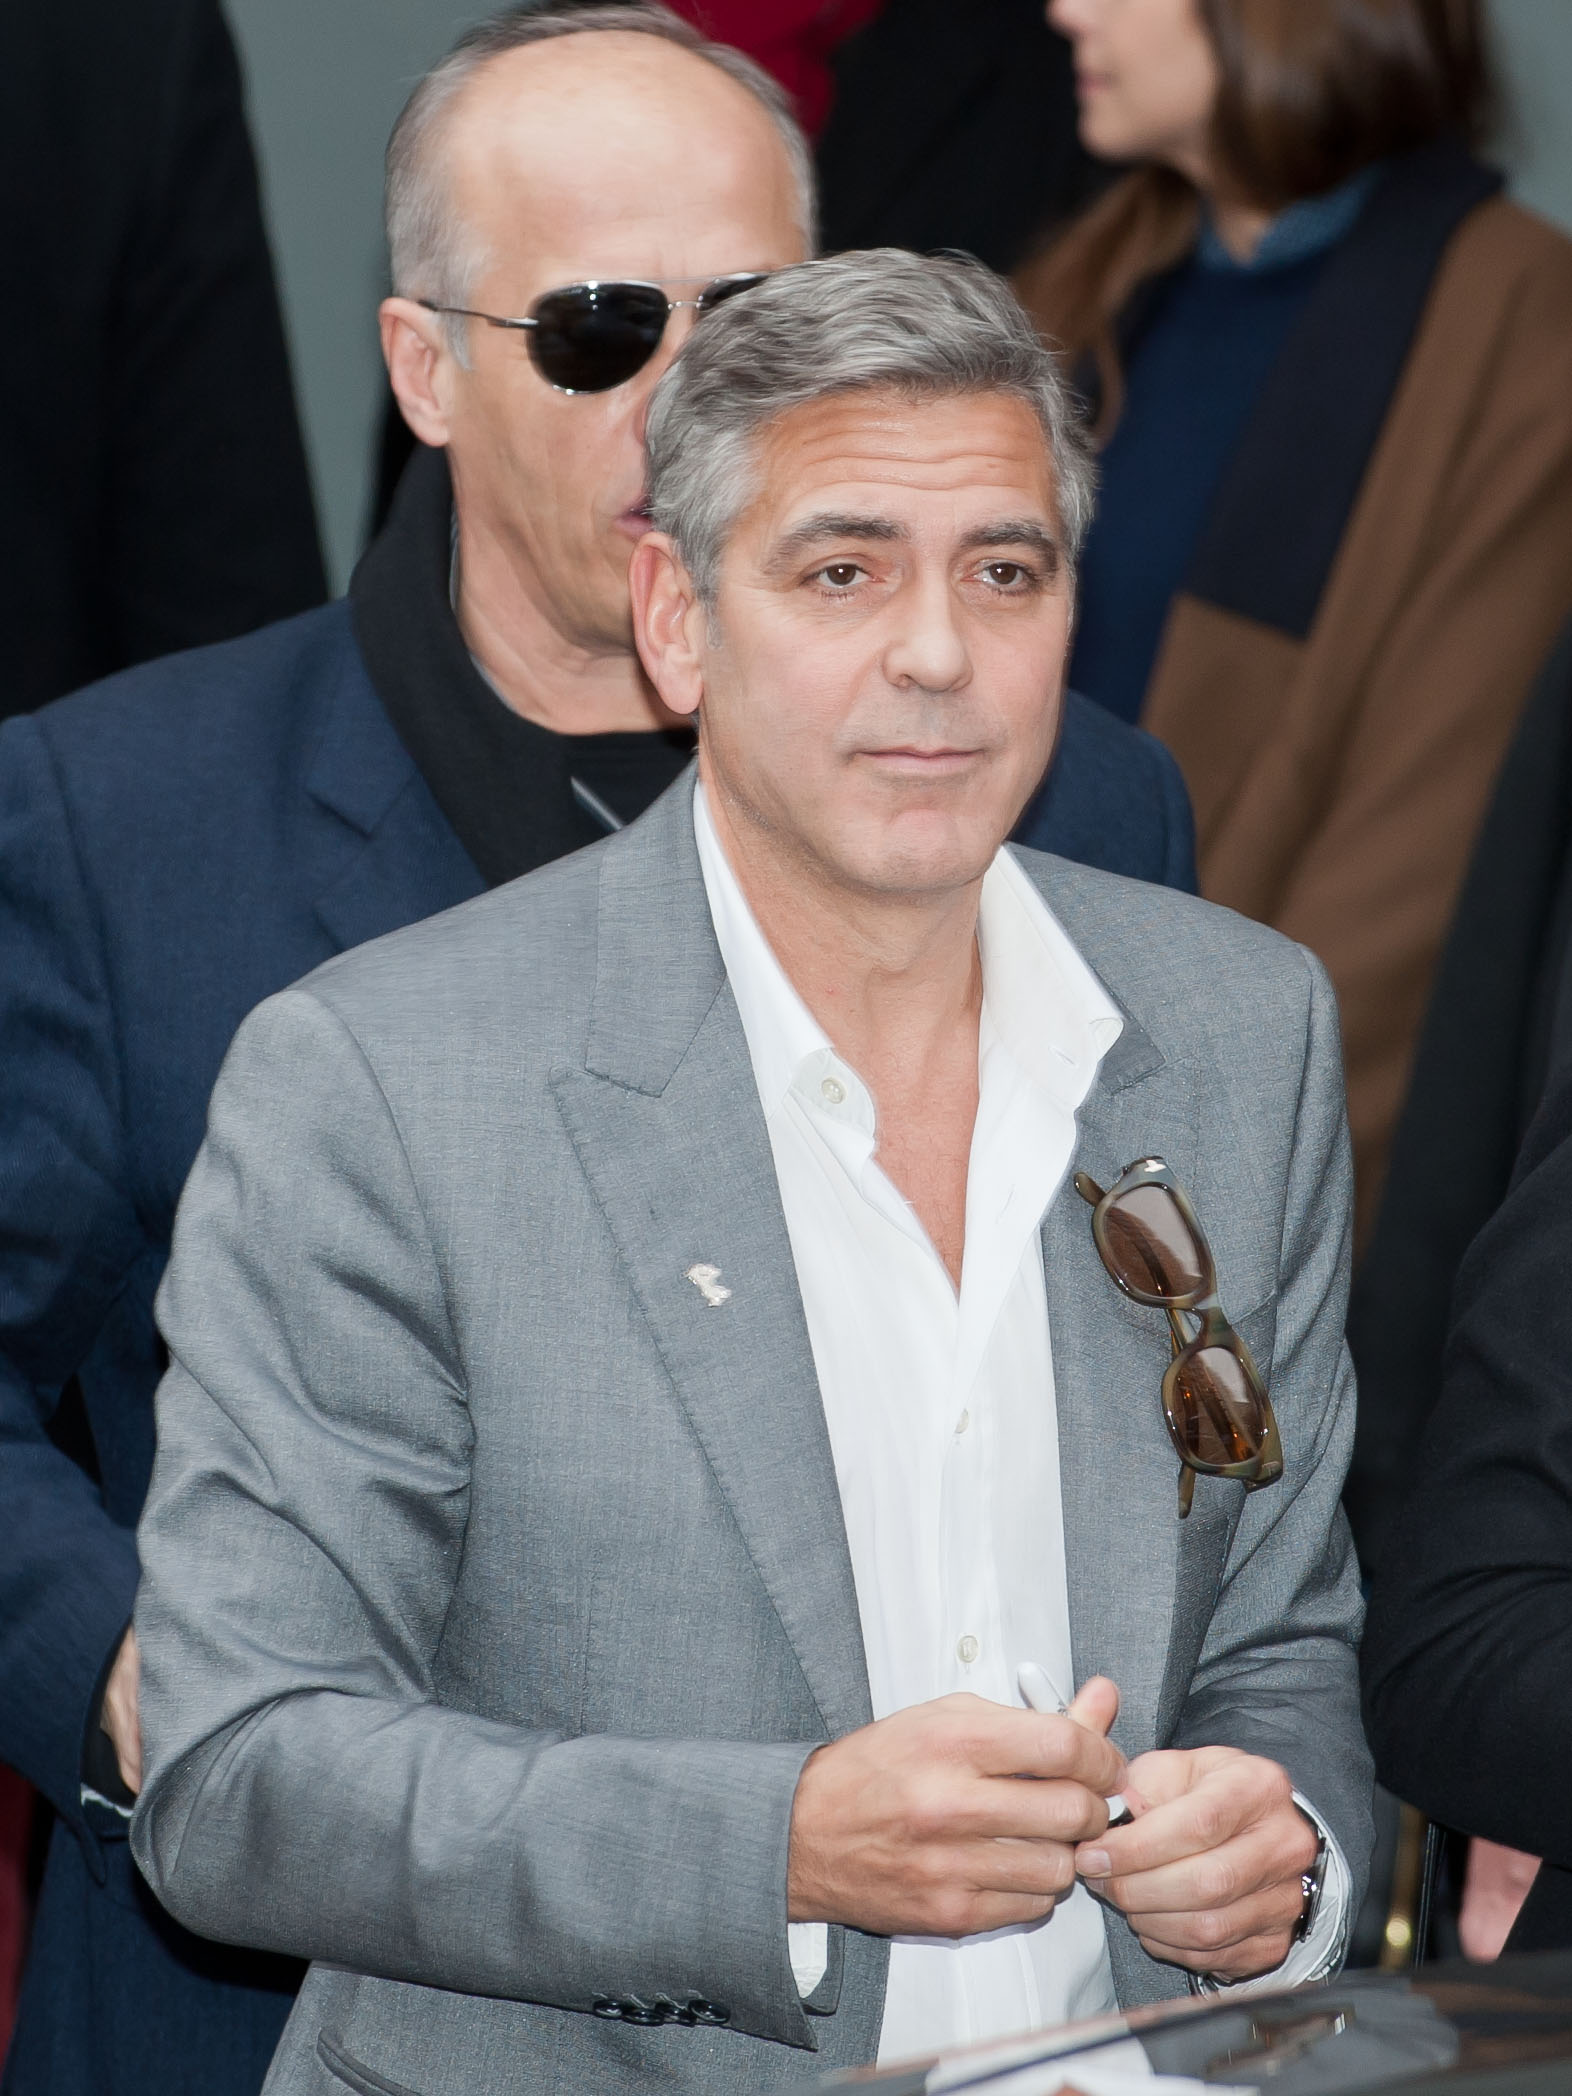 George Clooney - Wikip...